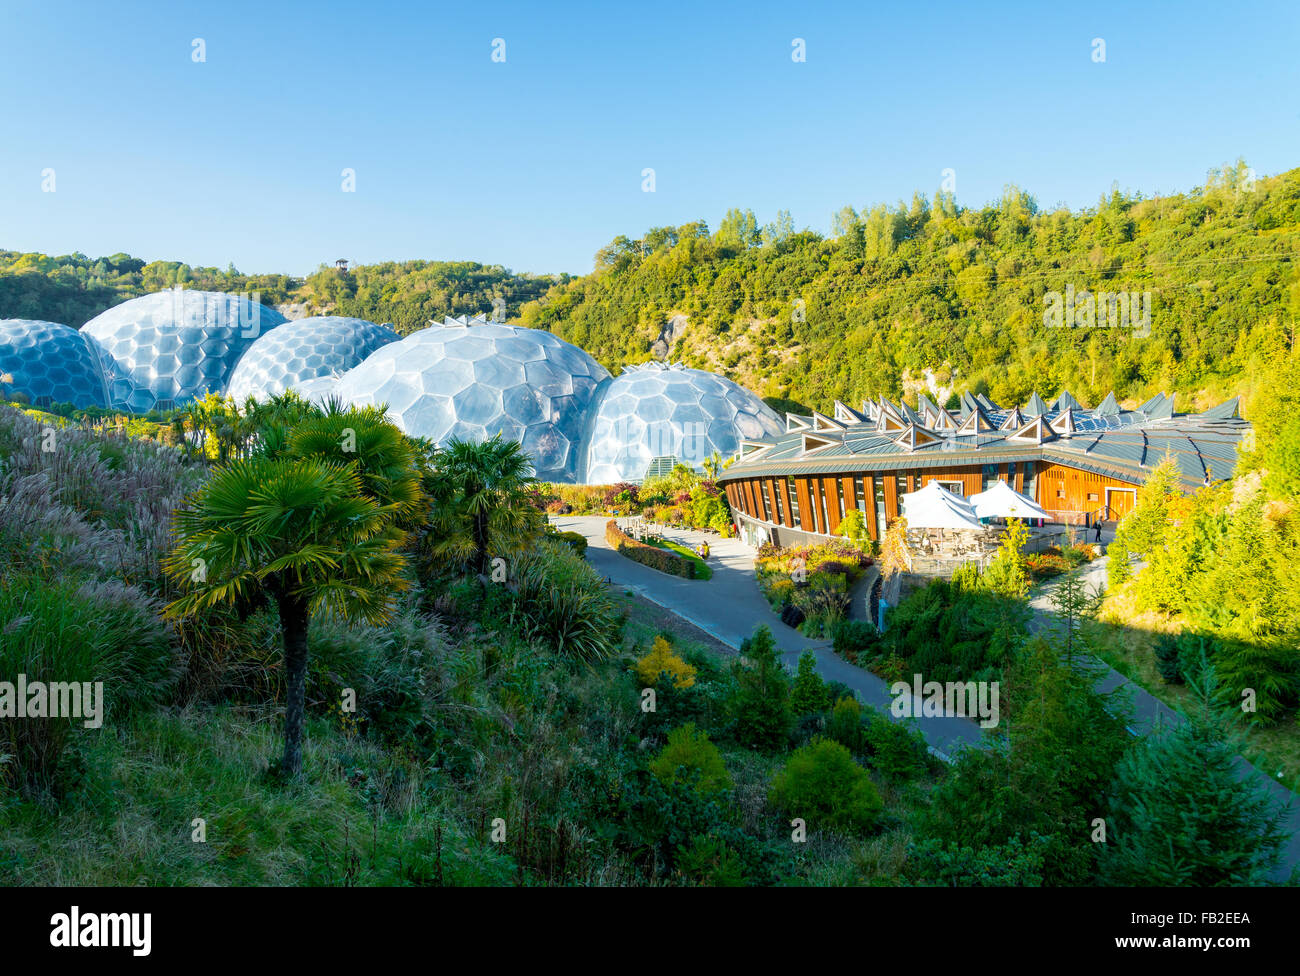 Afternoon Eden Project in Cornwall - Stock Image